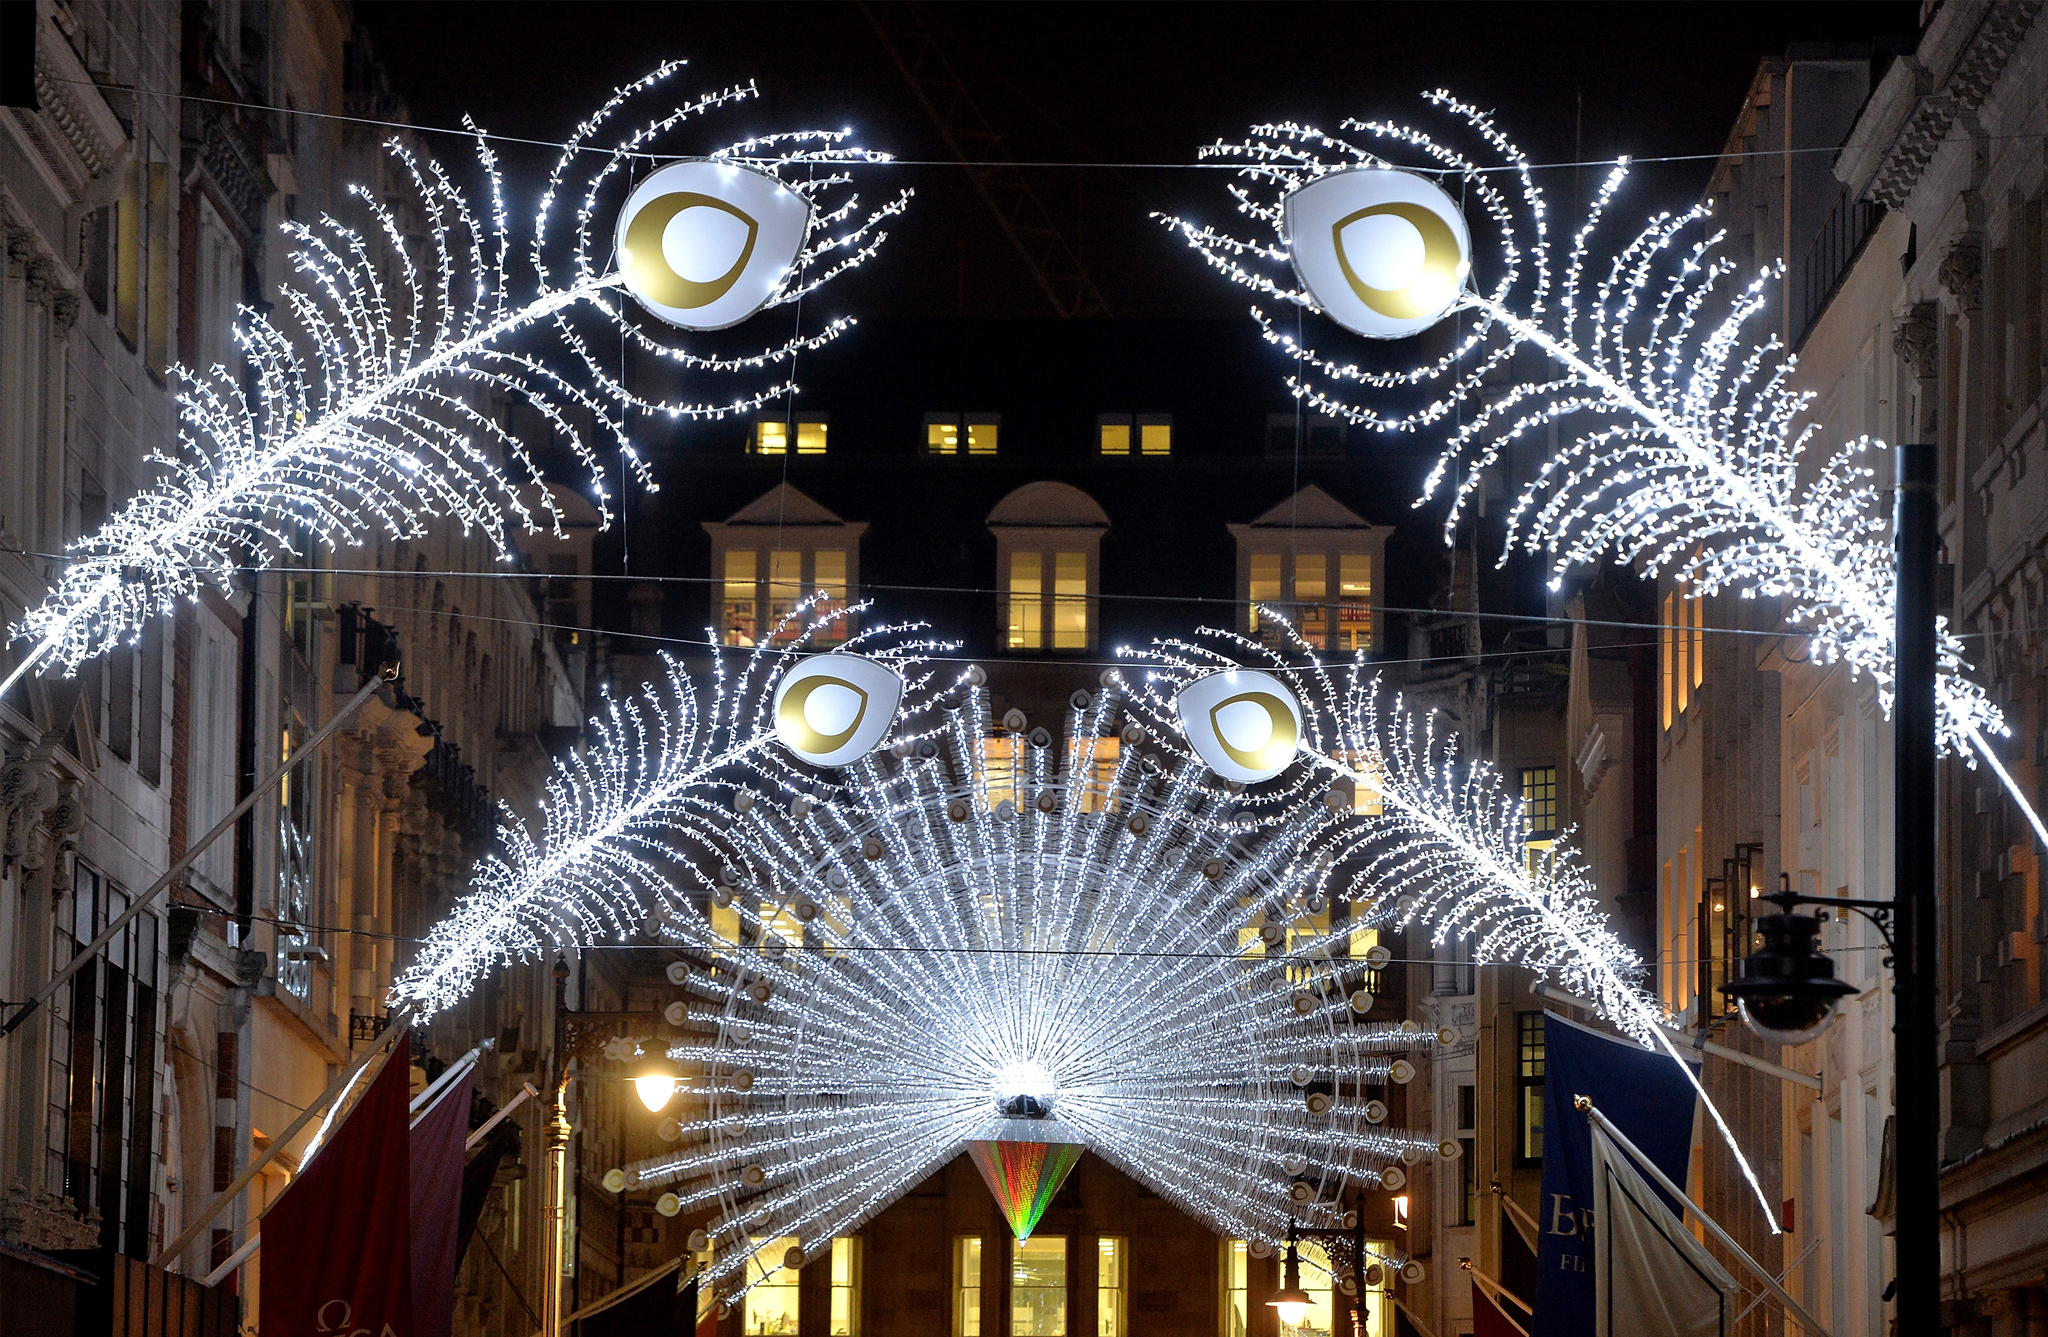 & Bond Street Christmas Lights | Things to do in London